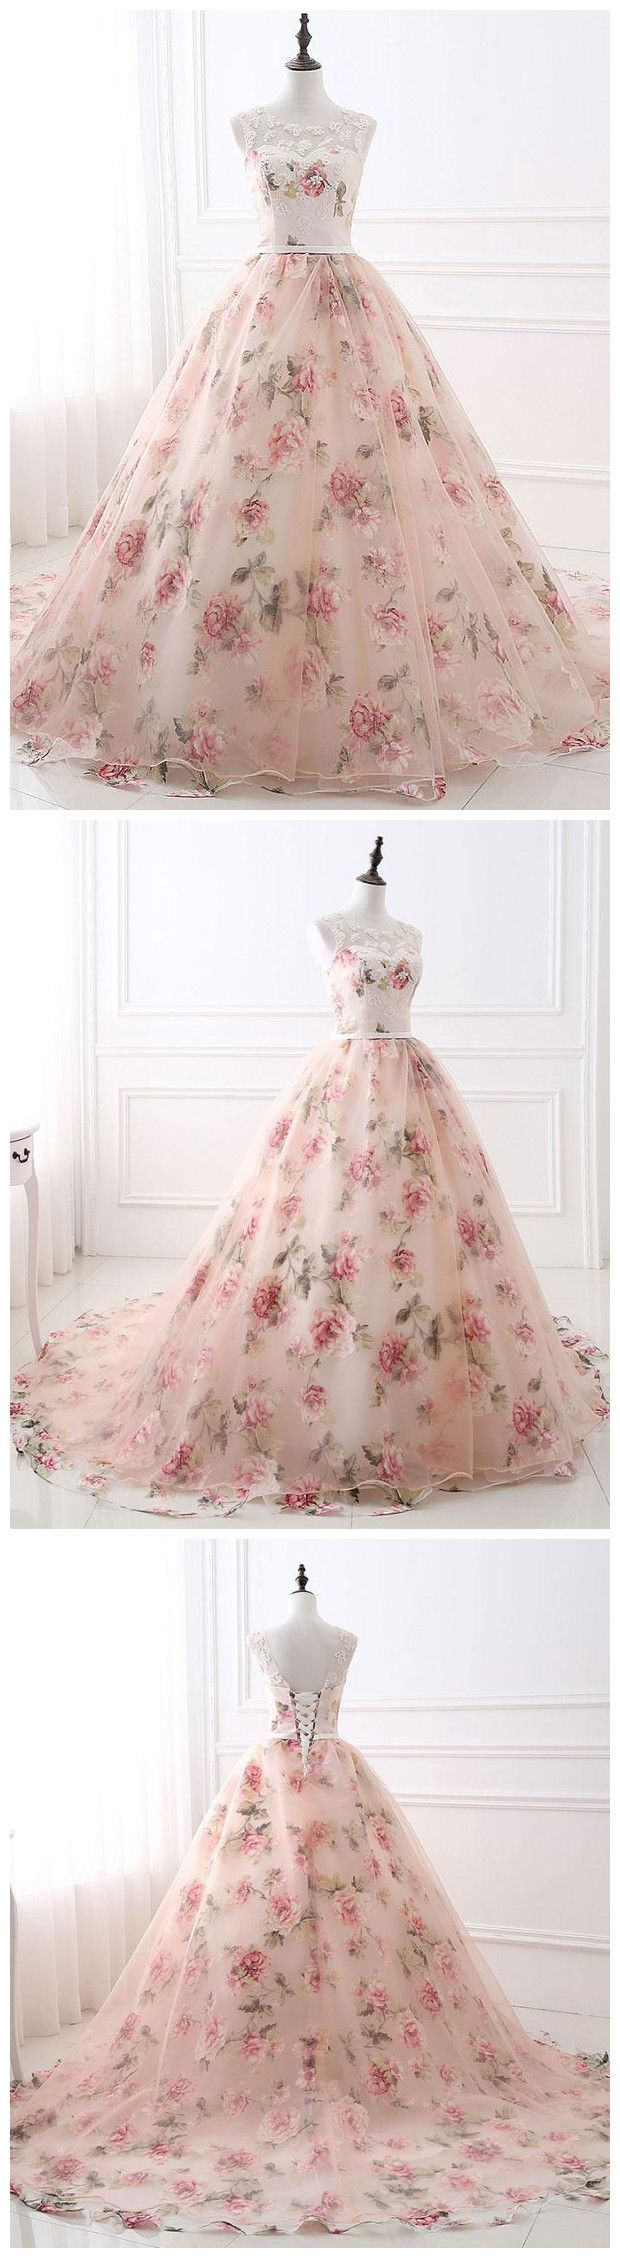 Chic ball gowns prom dresses long pearl pink flower prom dress